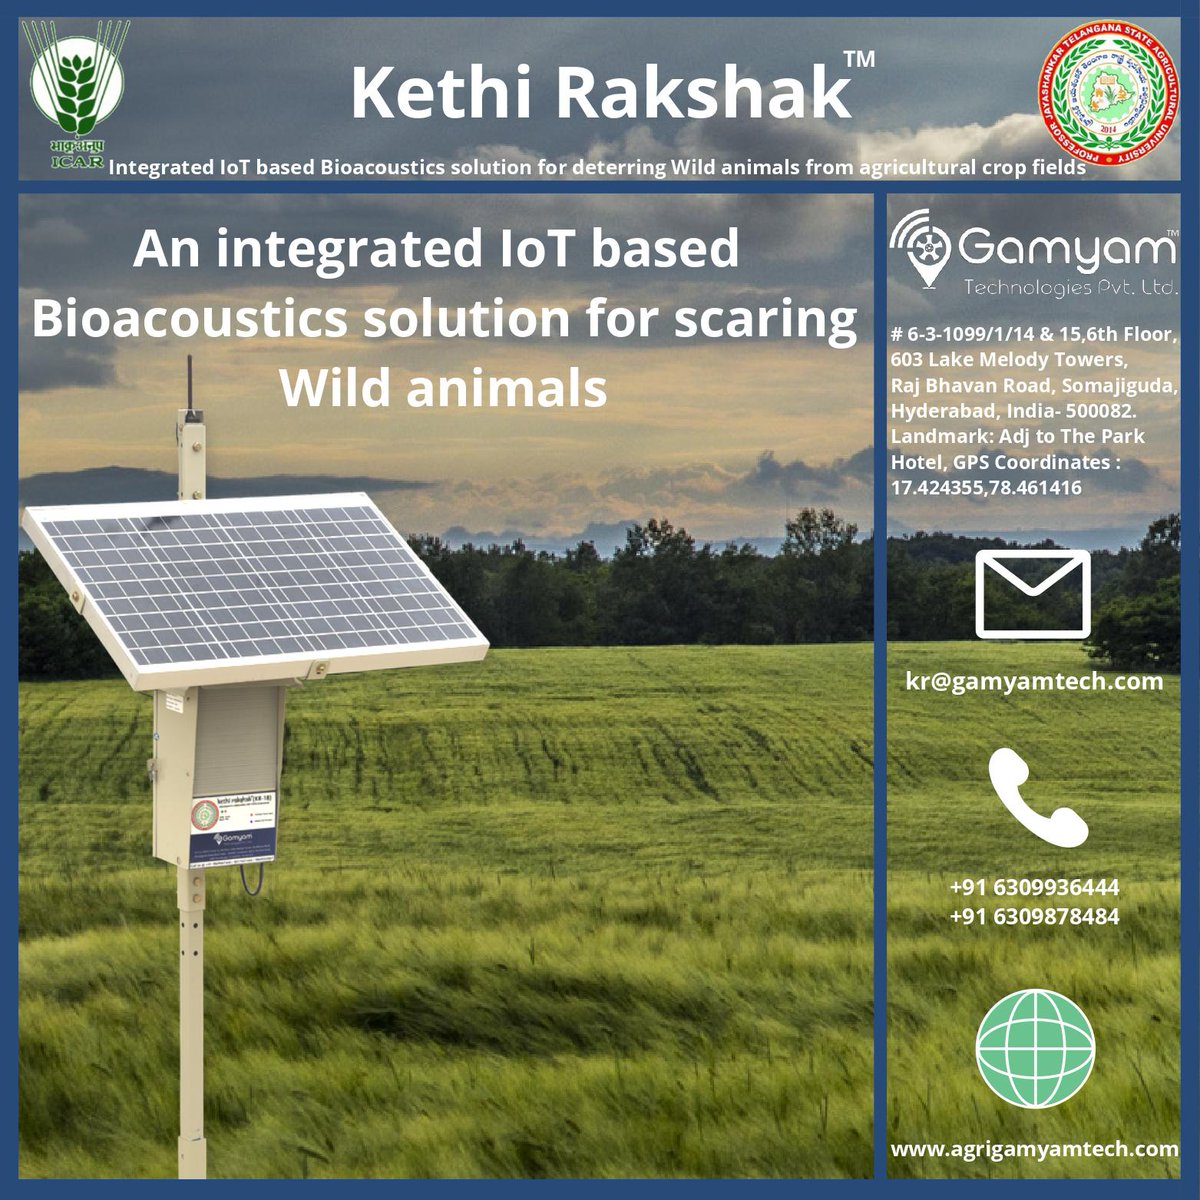 An integrated IoT based Bioacoustics solution for scaring Wild animals  #agrigamyamtech #agriculture #Agricultural #Farmers #farming #food #indianfarmers #agriculturetechnology #icar #pjtsau